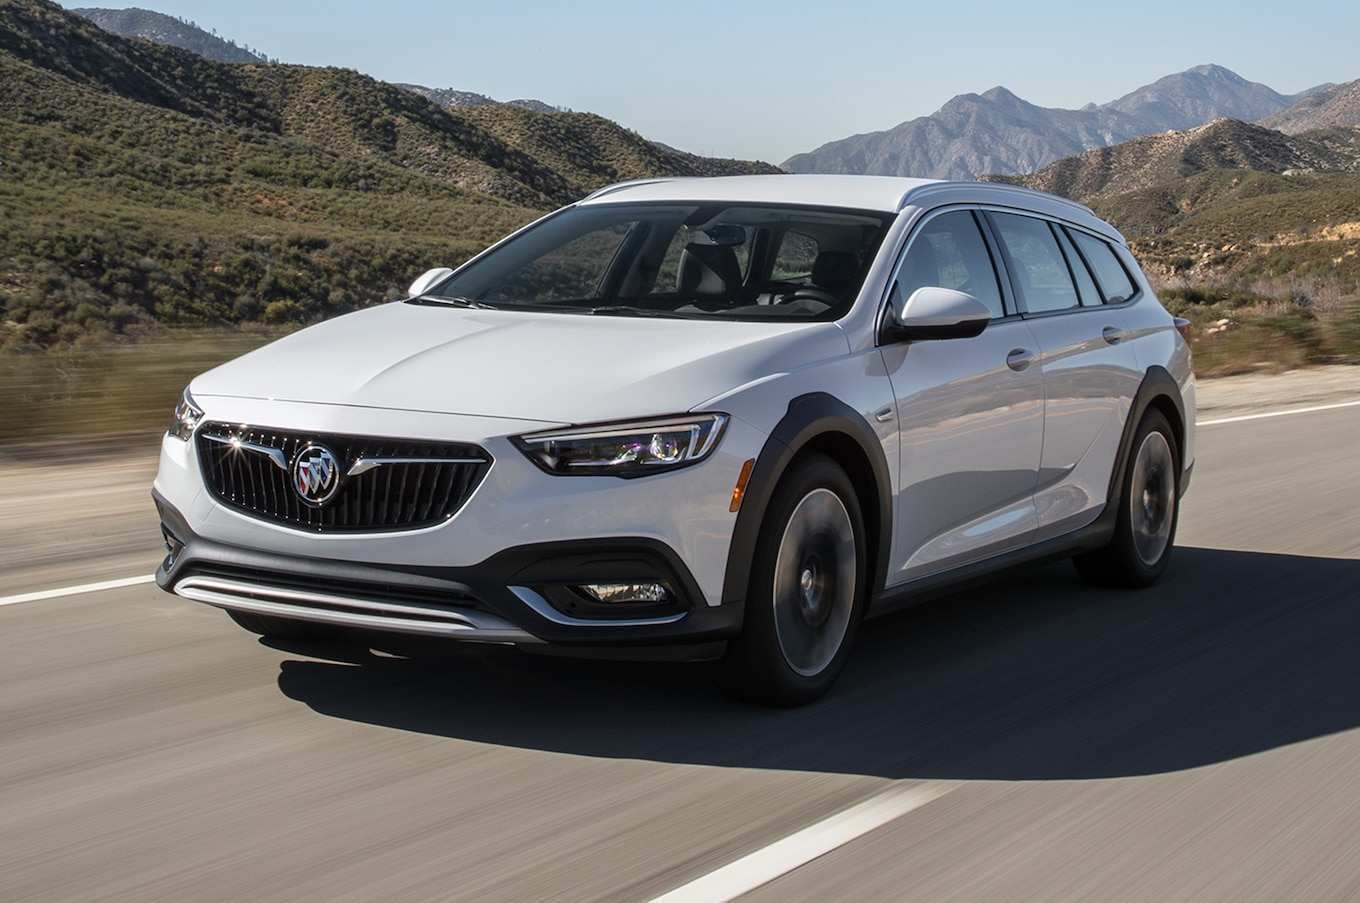 42 New The Buick Station Wagon 2019 Performance Specs and Review by The Buick Station Wagon 2019 Performance